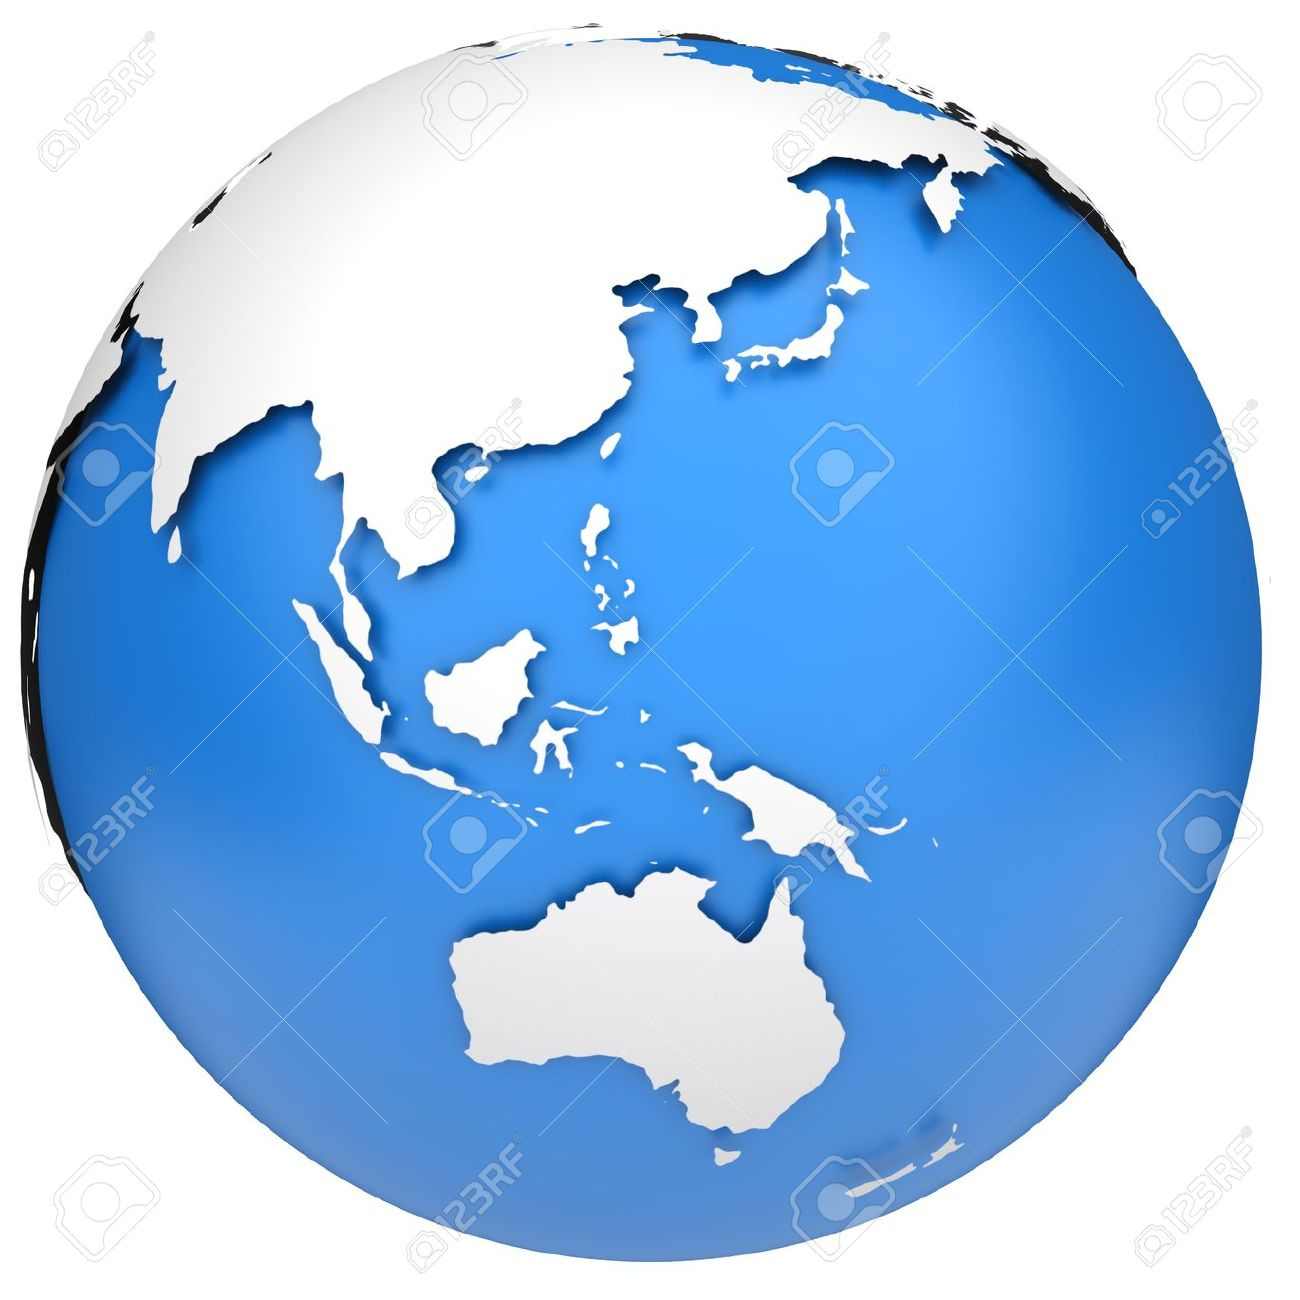 World clipart google earth. D fly overs h